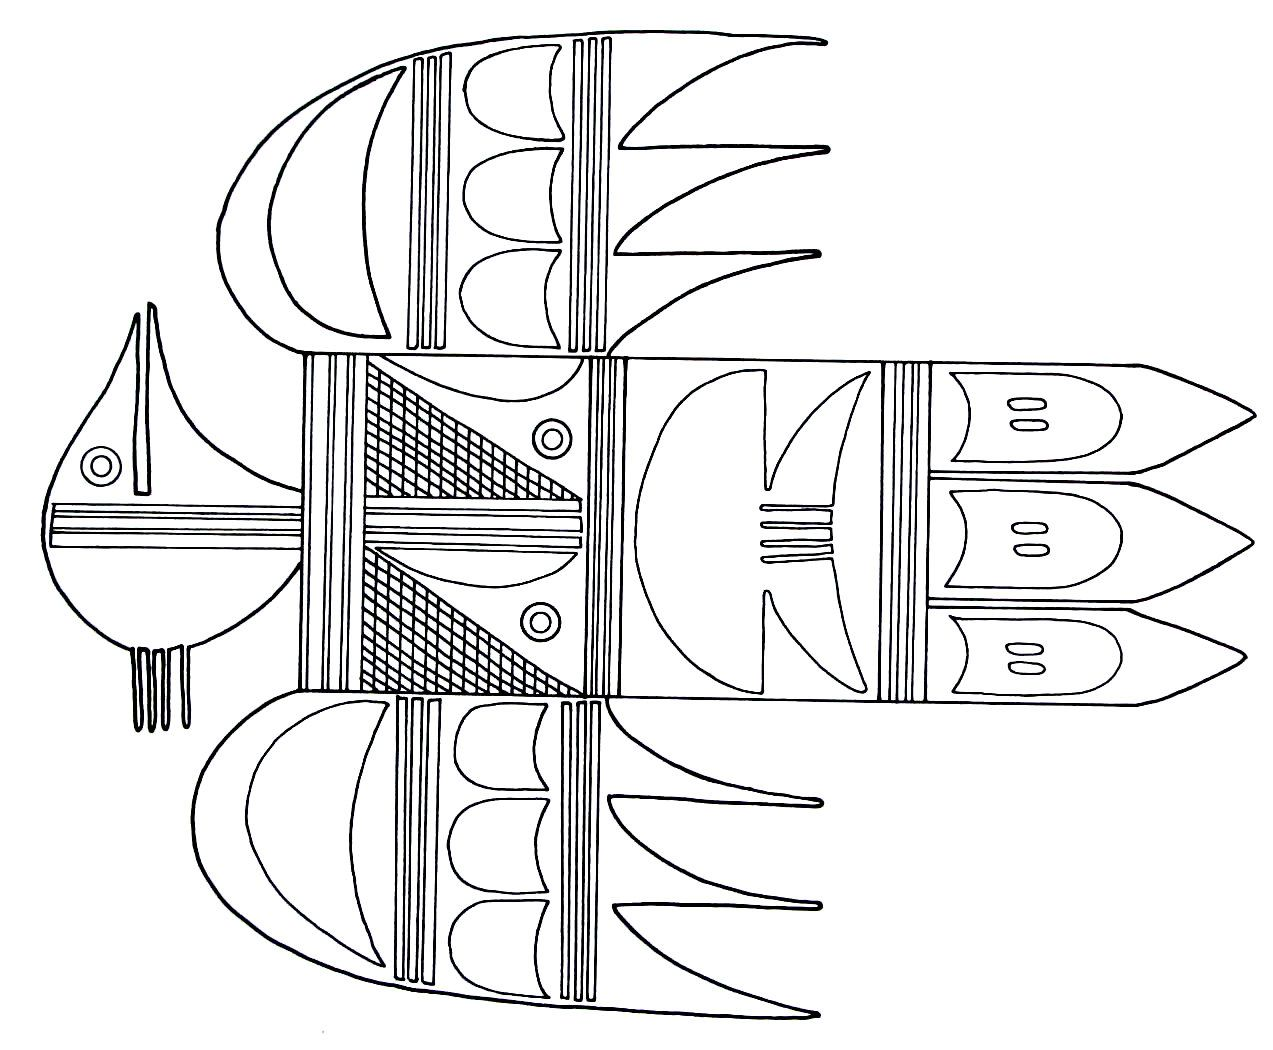 A Thunderbird Symbol From The Hopi Indians Printable Coloring Book Page Coloring Pages Designs Coloring Books Printable Coloring Book